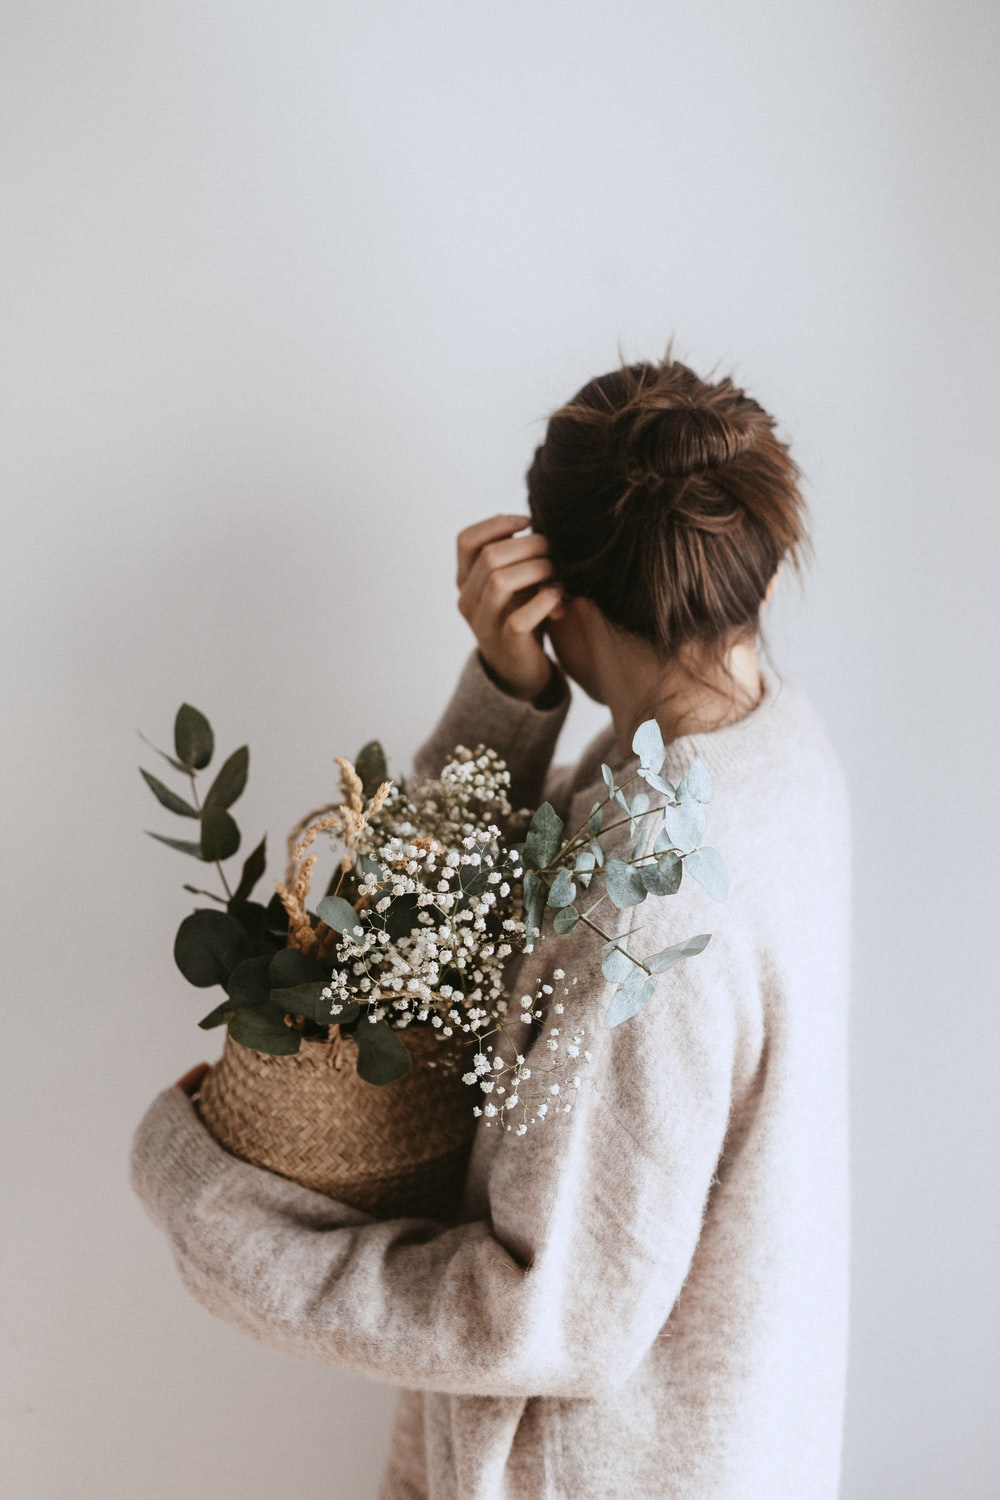 woman carrying white flower plant